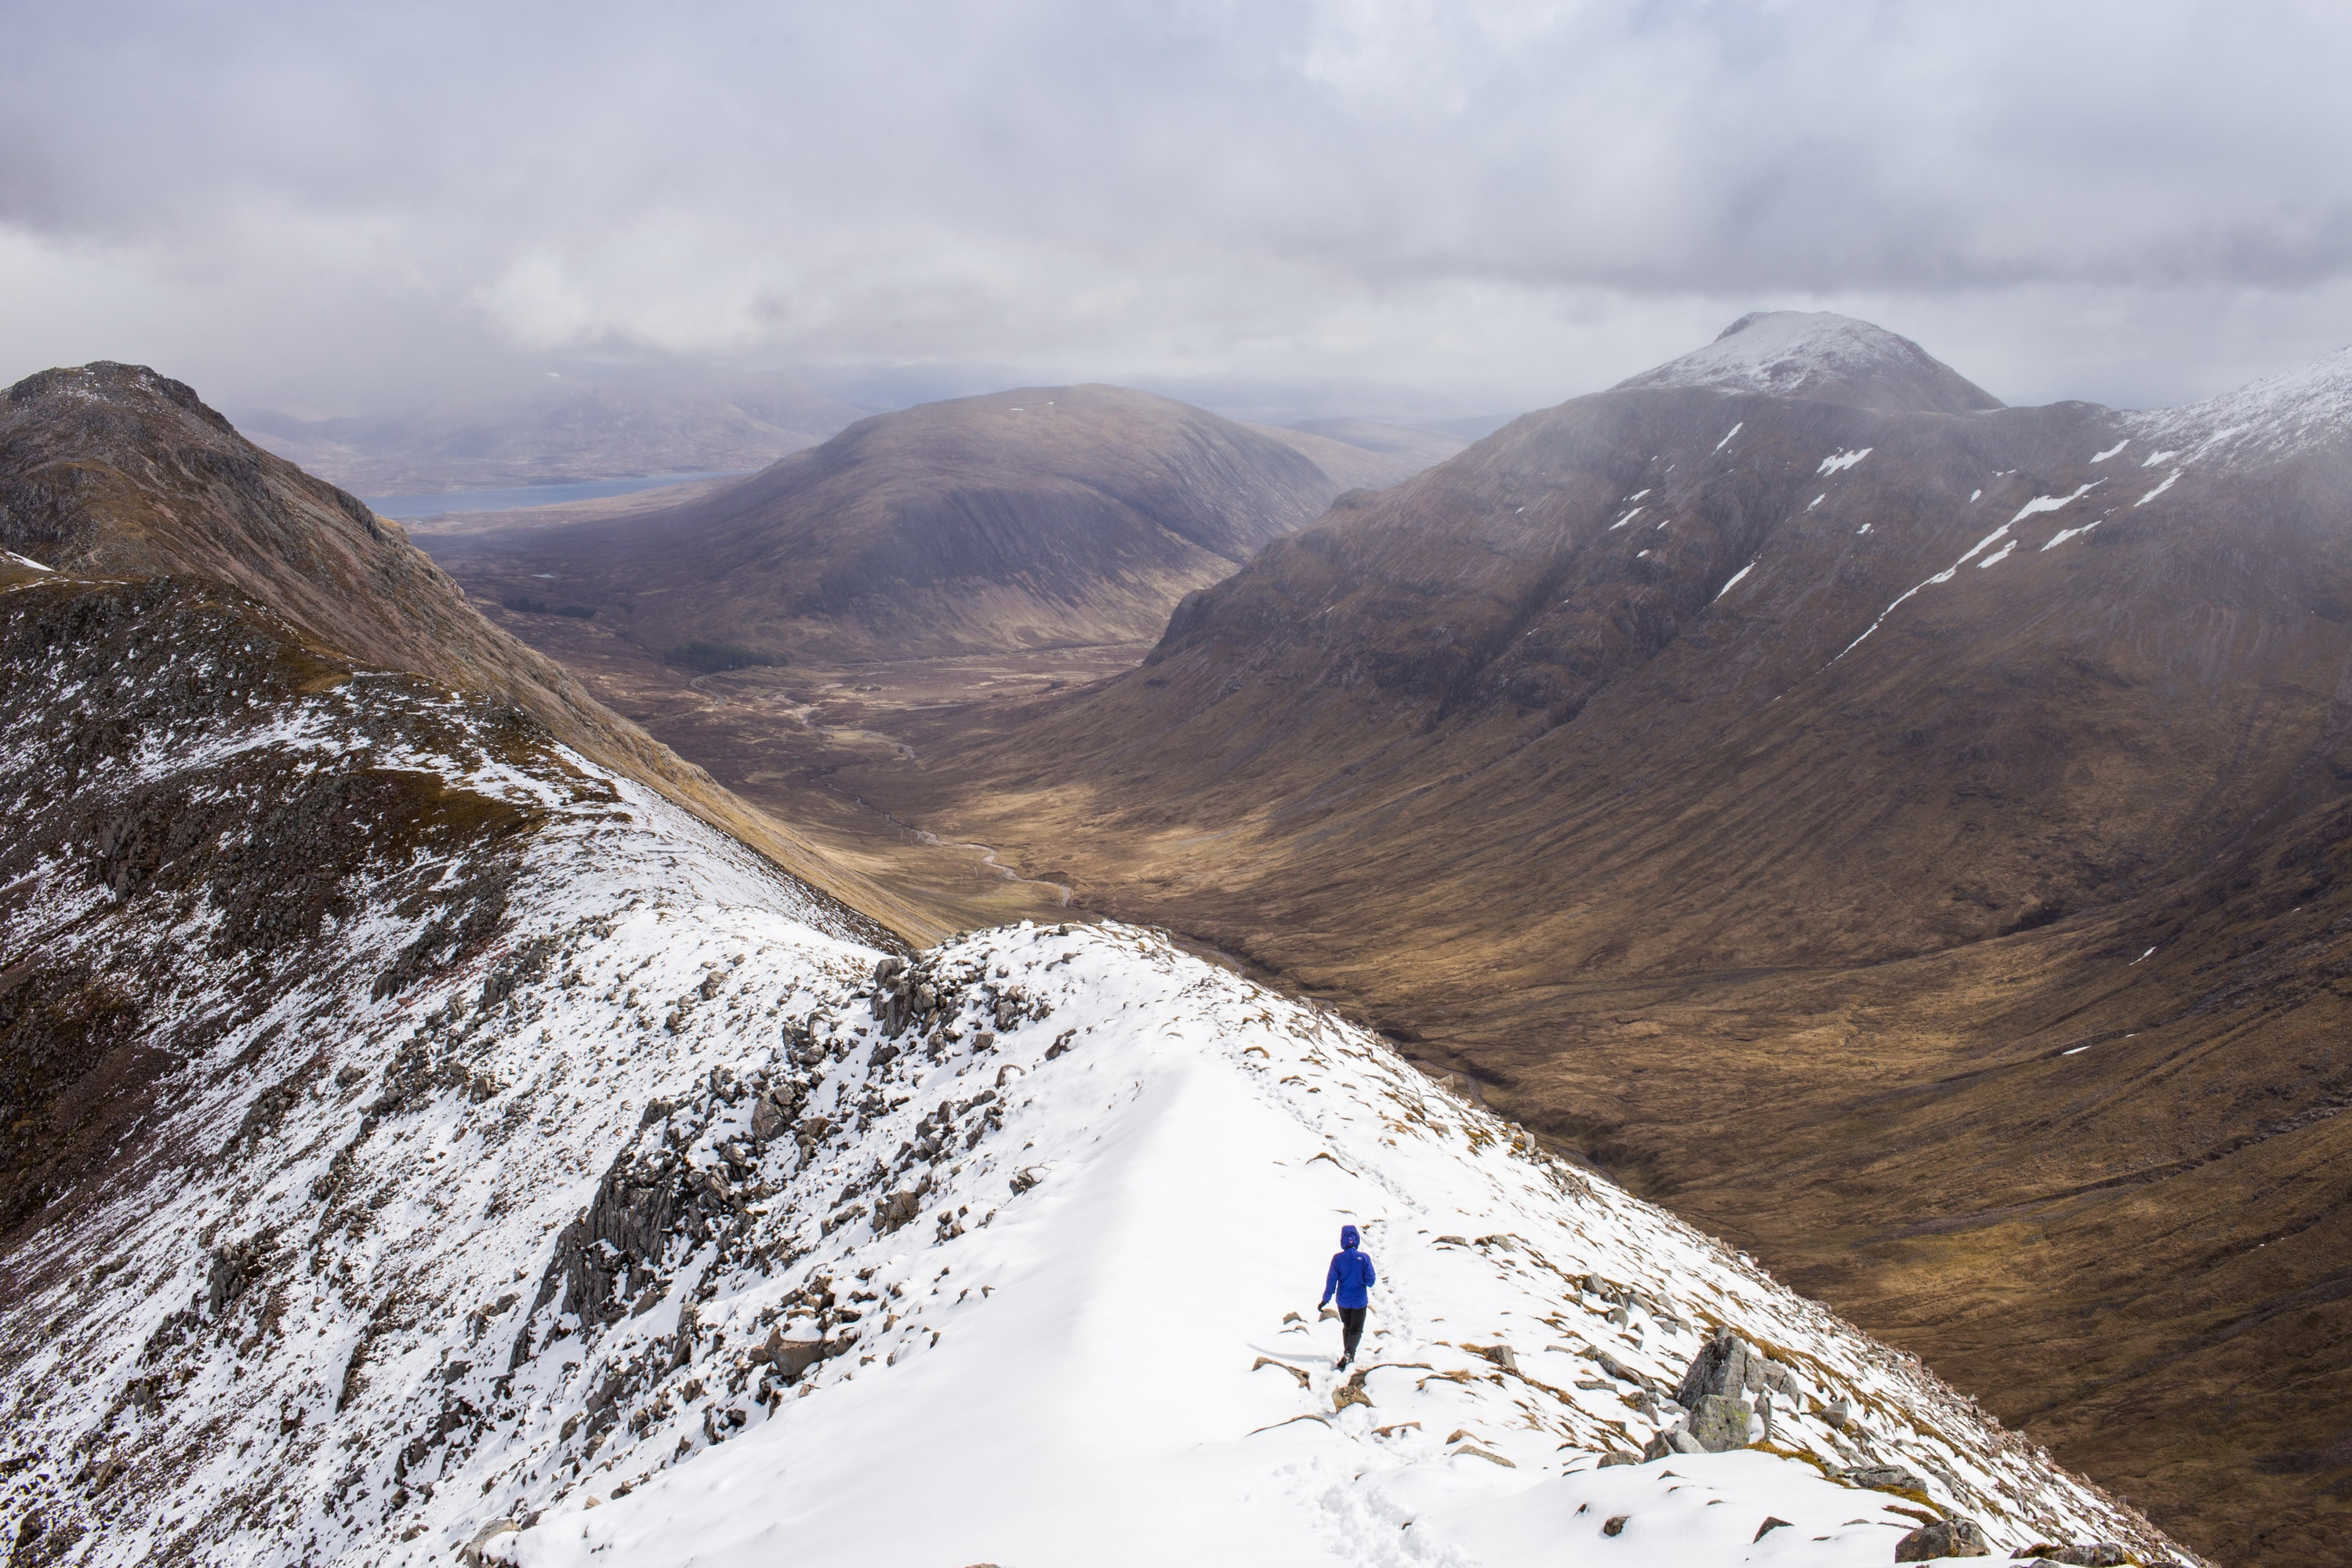 Mountain range under clouds with hiker walking along the top in snow